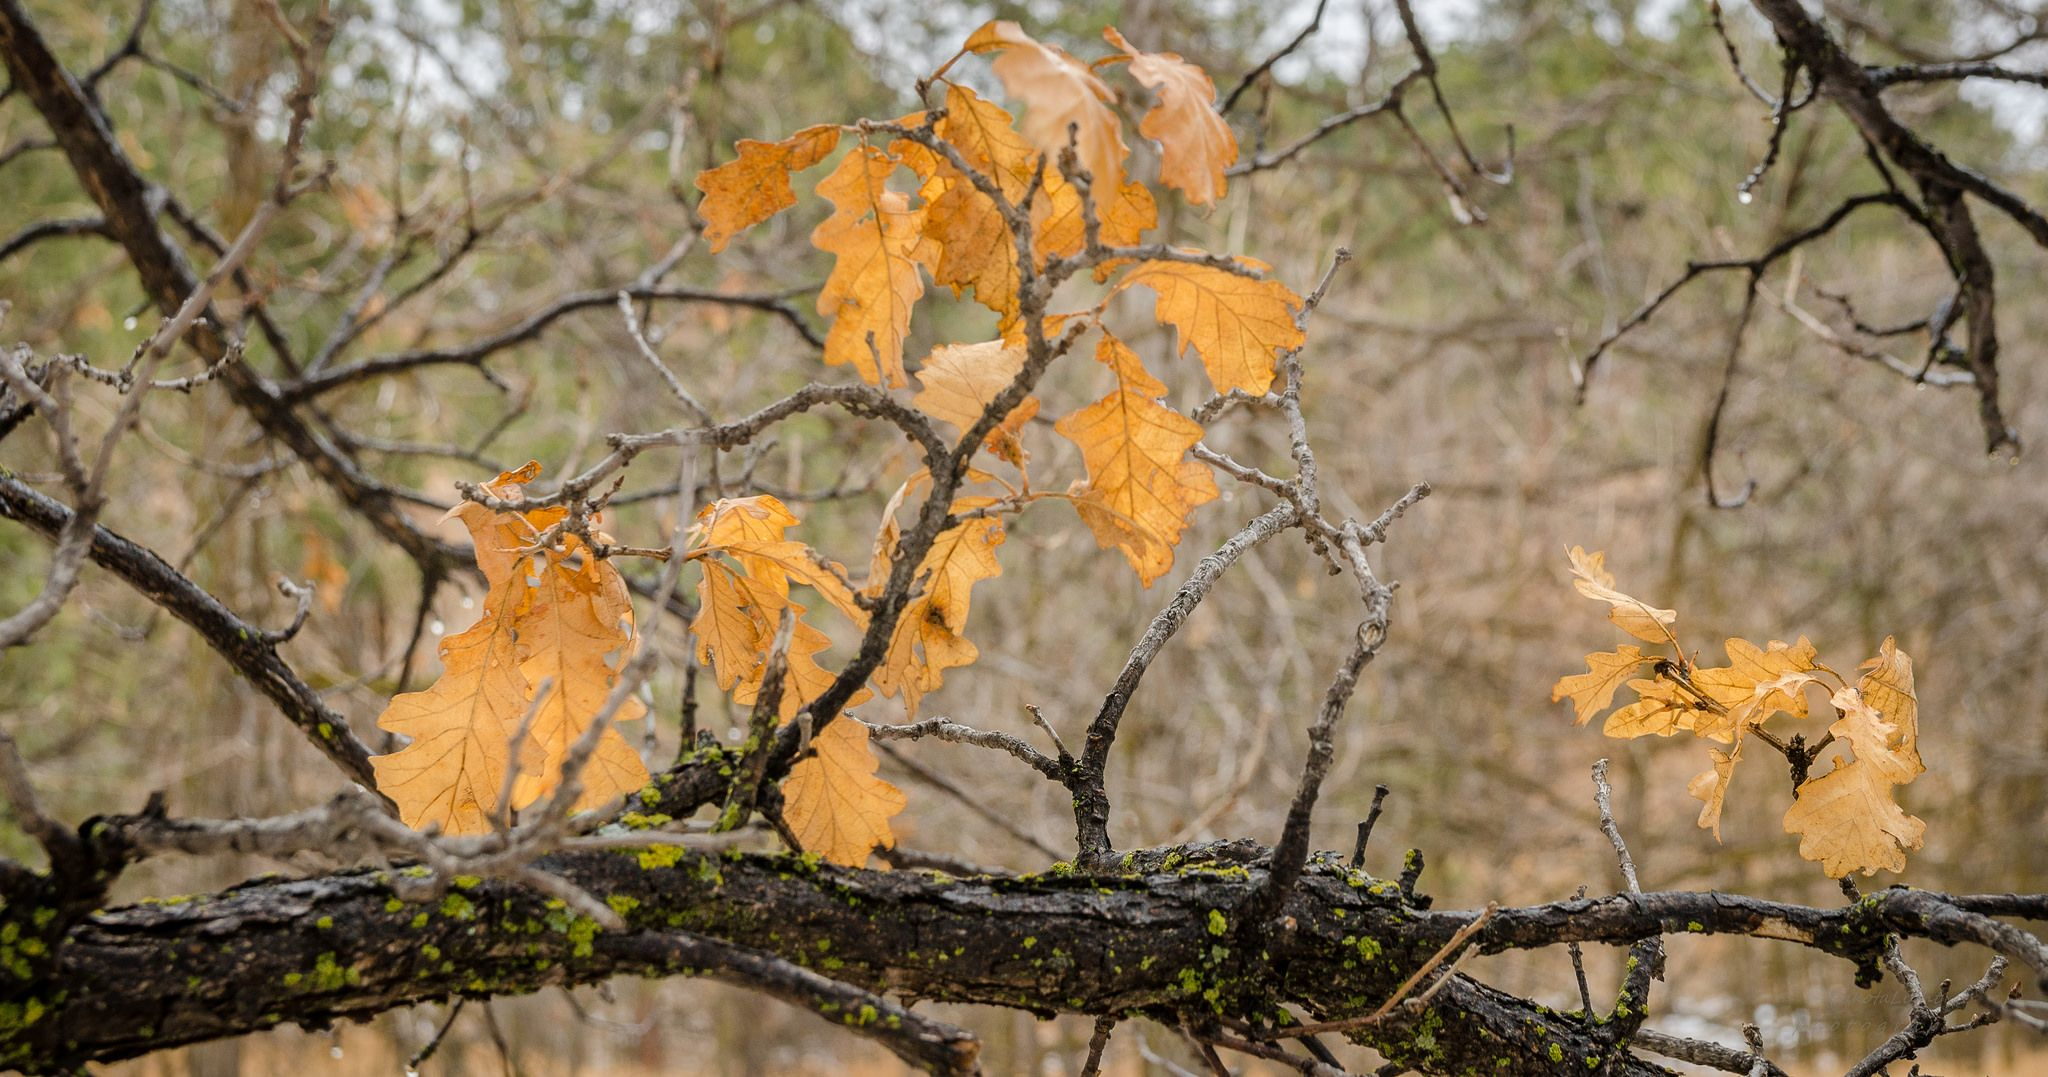 https://flic.kr/p/Sjdm7m | 20170312-A few oak leaves. | #SouthDakota #POTD #Day1898 #buroak